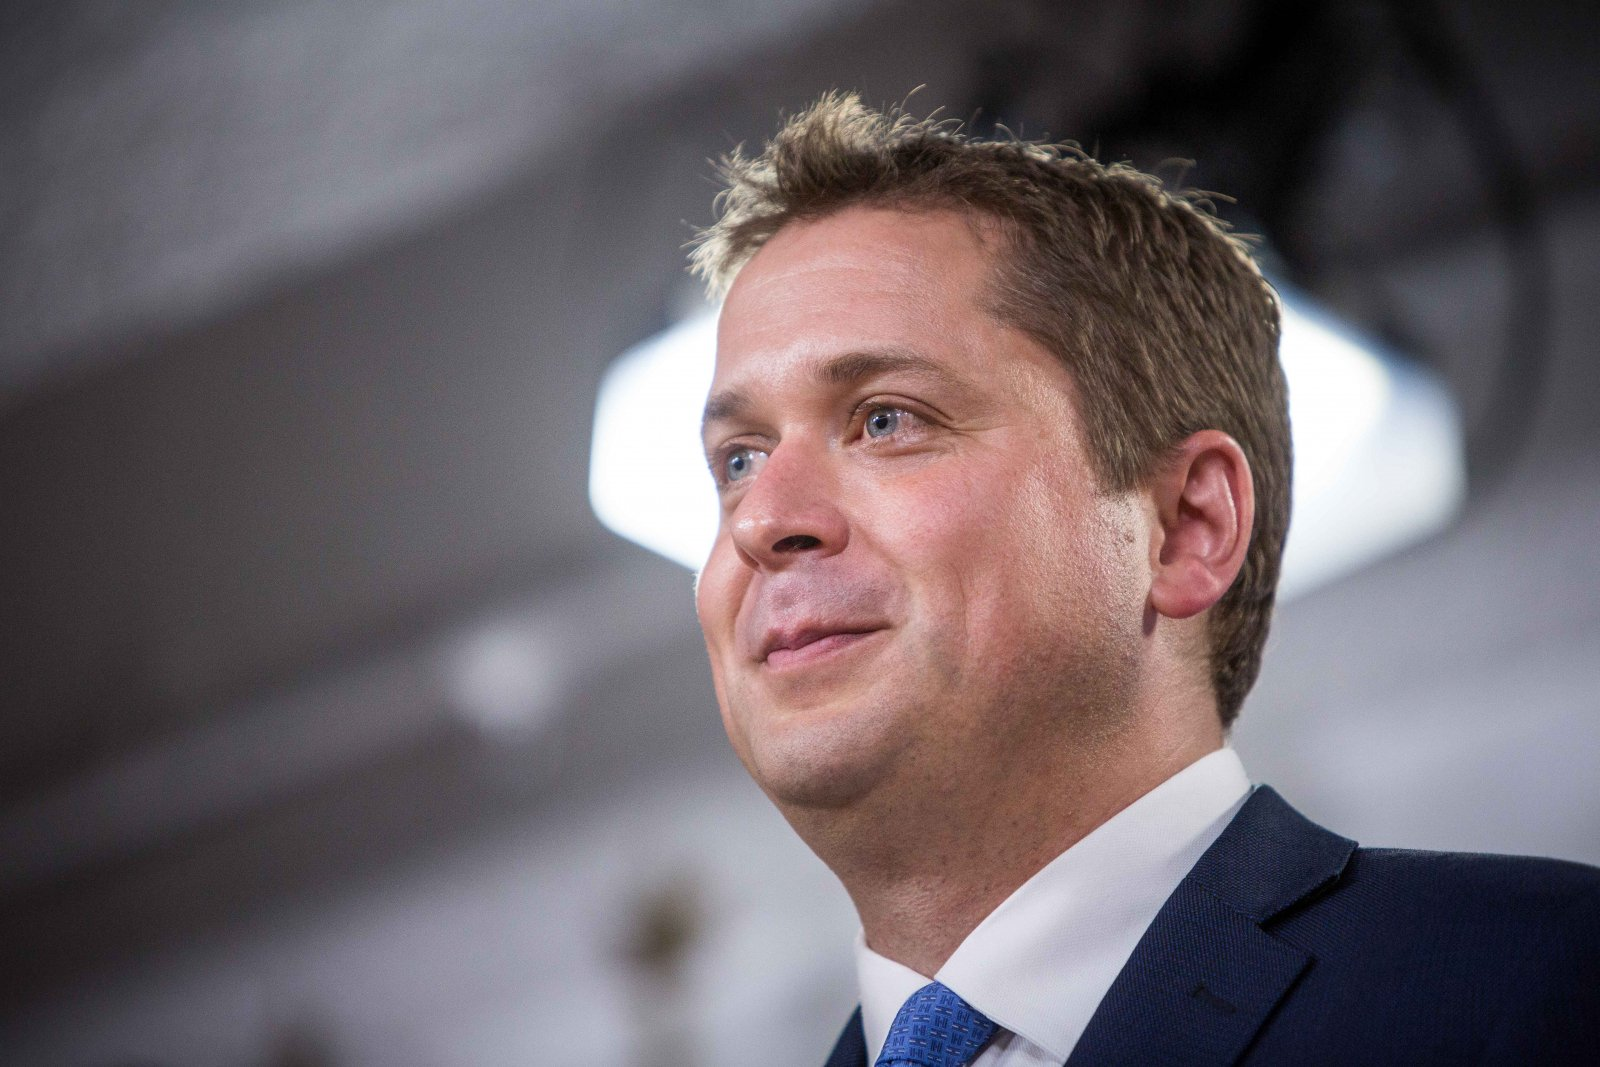 Andrew Scheer reveals new 'strong, diverse' Conservative leadership team